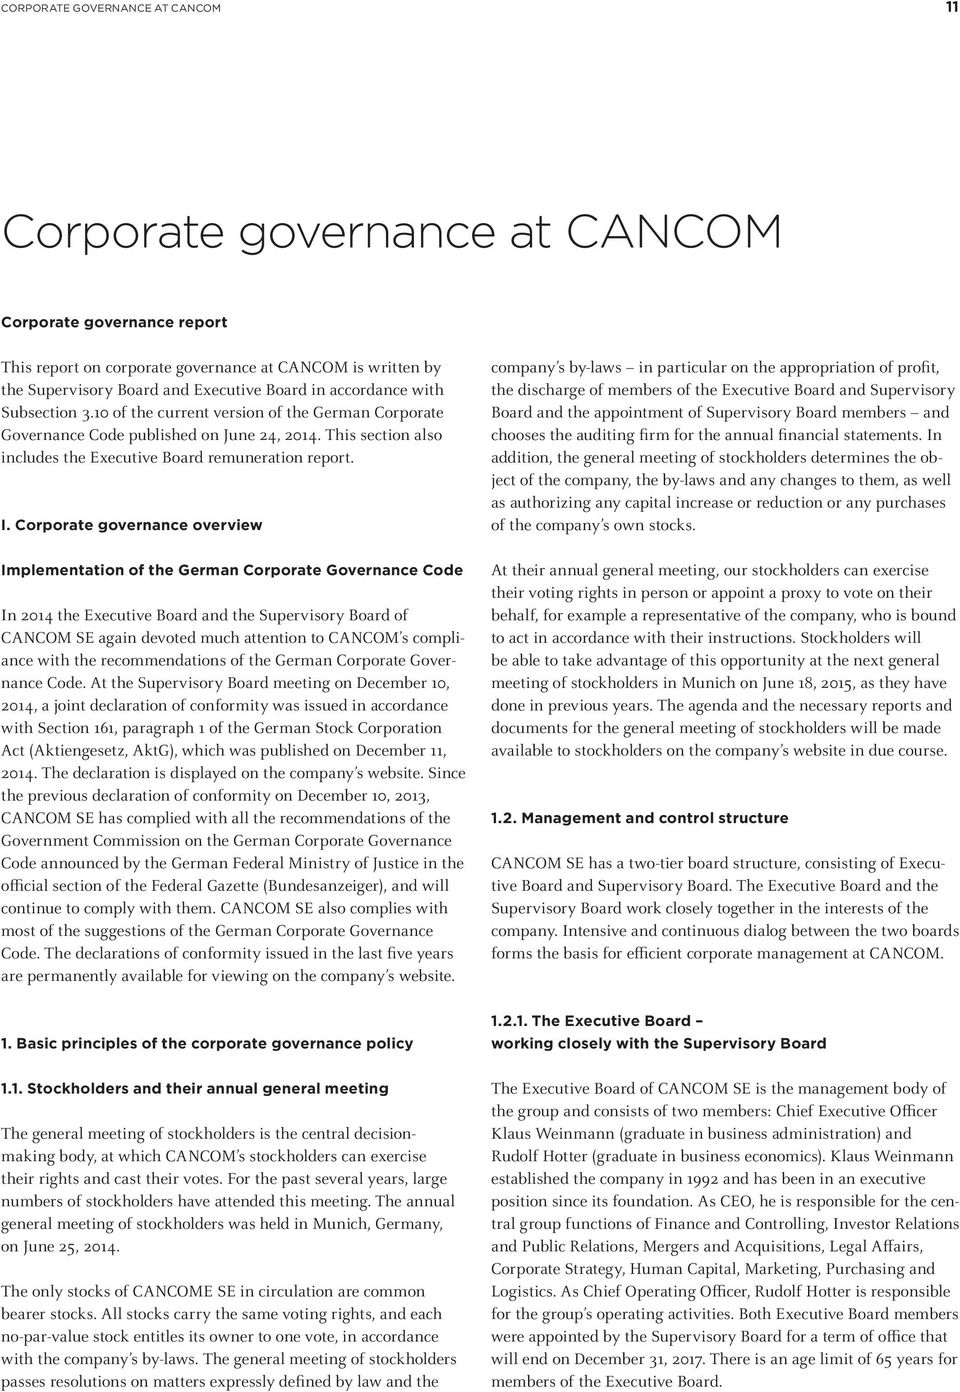 Corporate governance overview Implementation of the German Corporate Governance Code In 2014 the Executive Board and the Supervisory Board of CANCOM SE again devoted much attention to CANCOM s